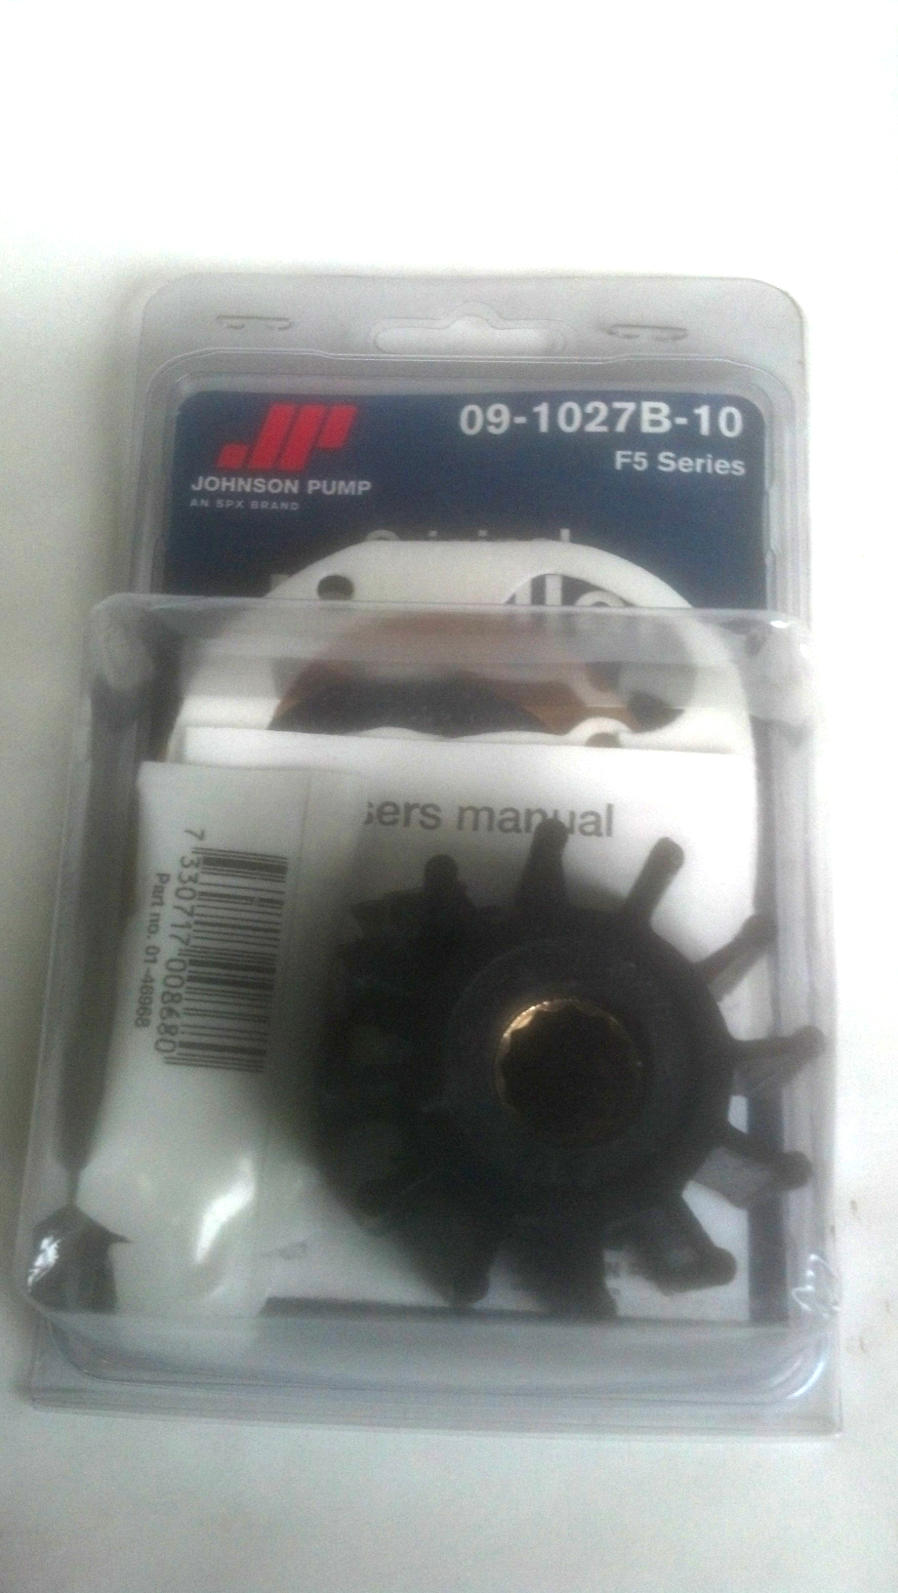 JPI-091027B10  Johnson Pump F5B Impeller Kit for Volvo Penta